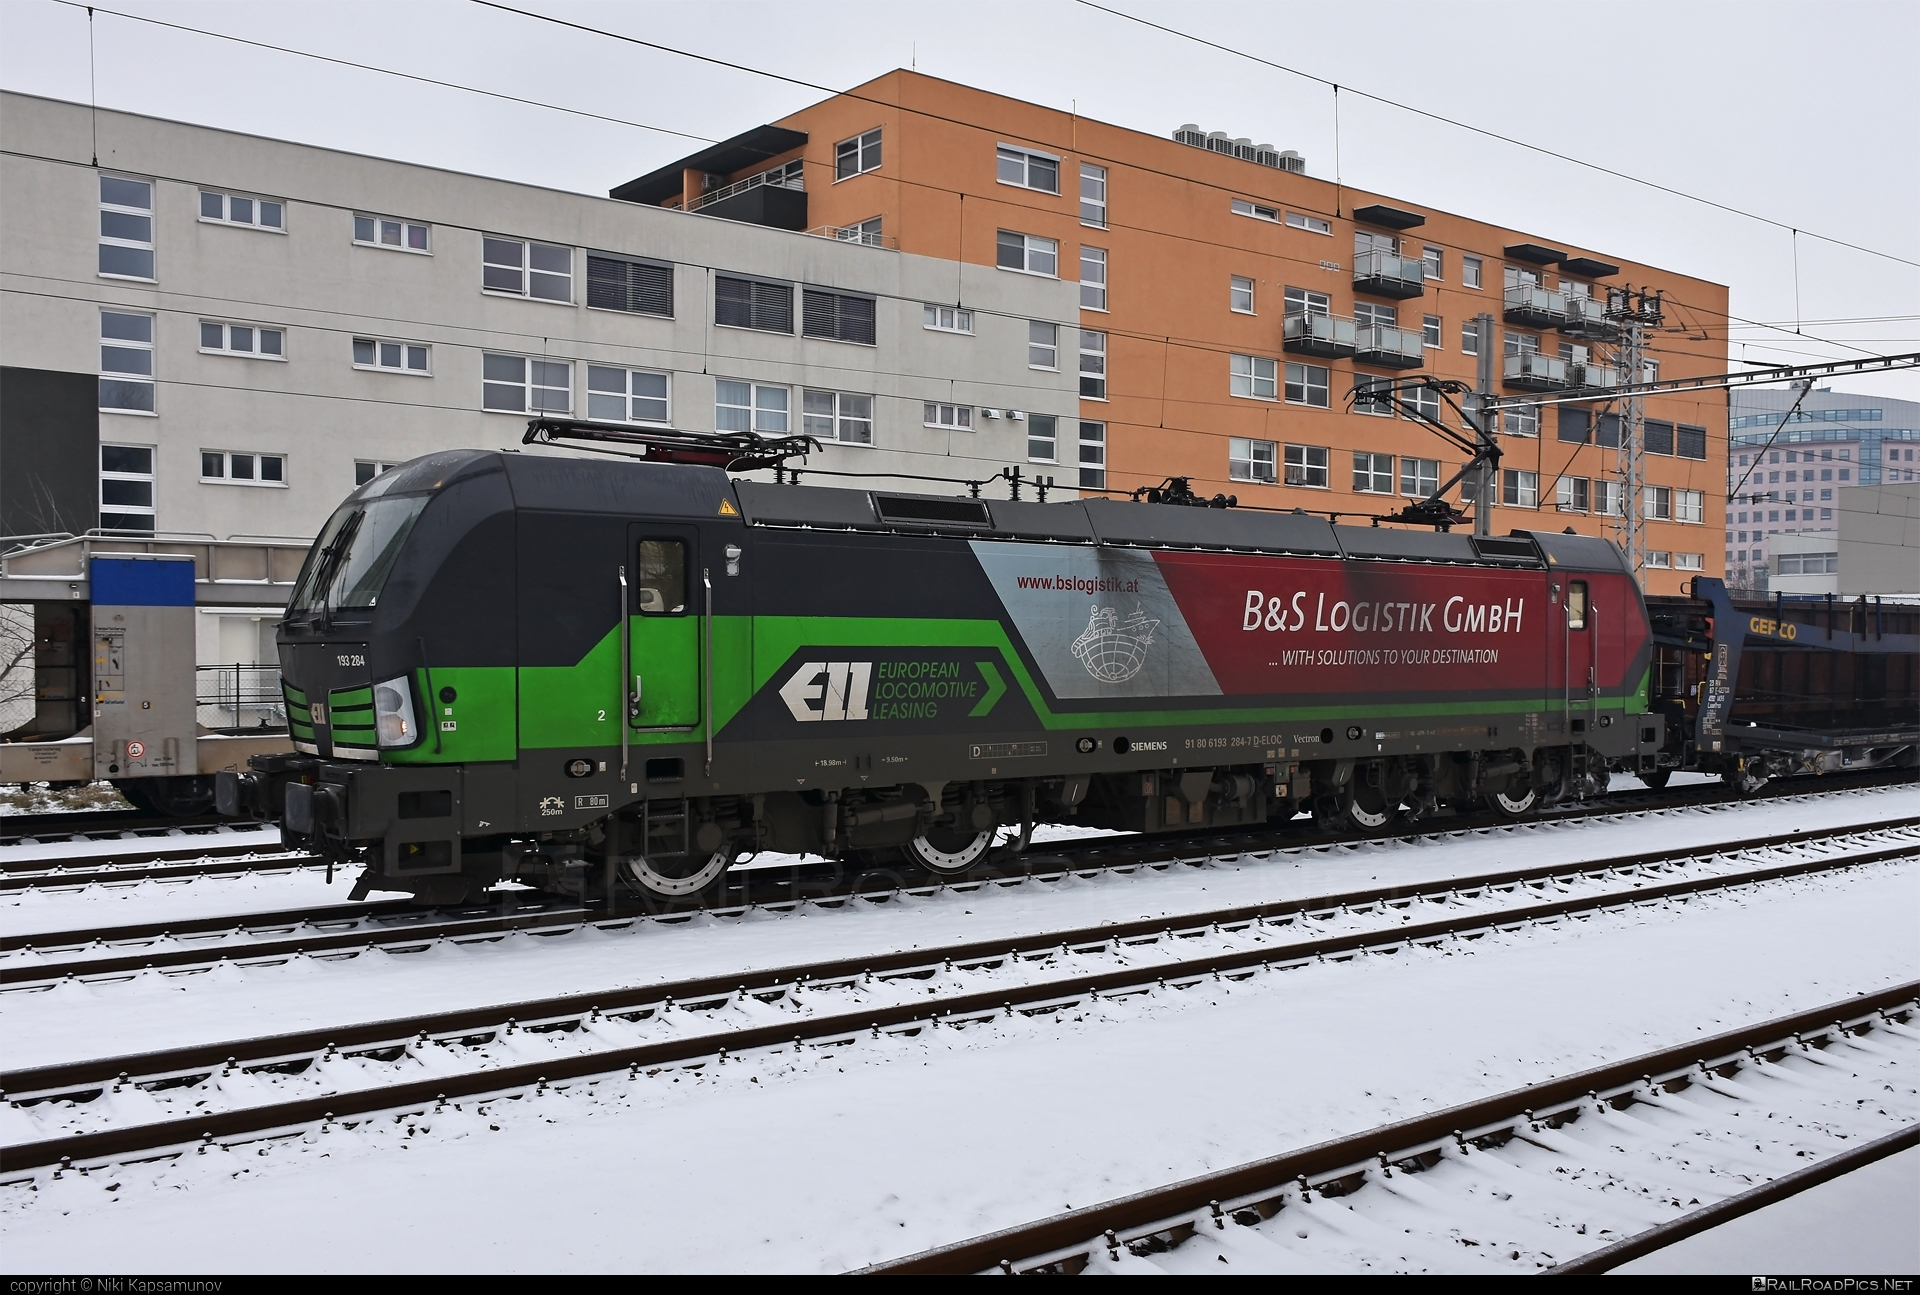 Siemens Vectron AC - 193 284 operated by Wiener Lokalbahnen Cargo GmbH #ell #ellgermany #eloc #europeanlocomotiveleasing #siemens #siemensvectron #siemensvectronac #vectron #vectronac #wienerlokalbahnencargo #wienerlokalbahnencargogmbh #wlc